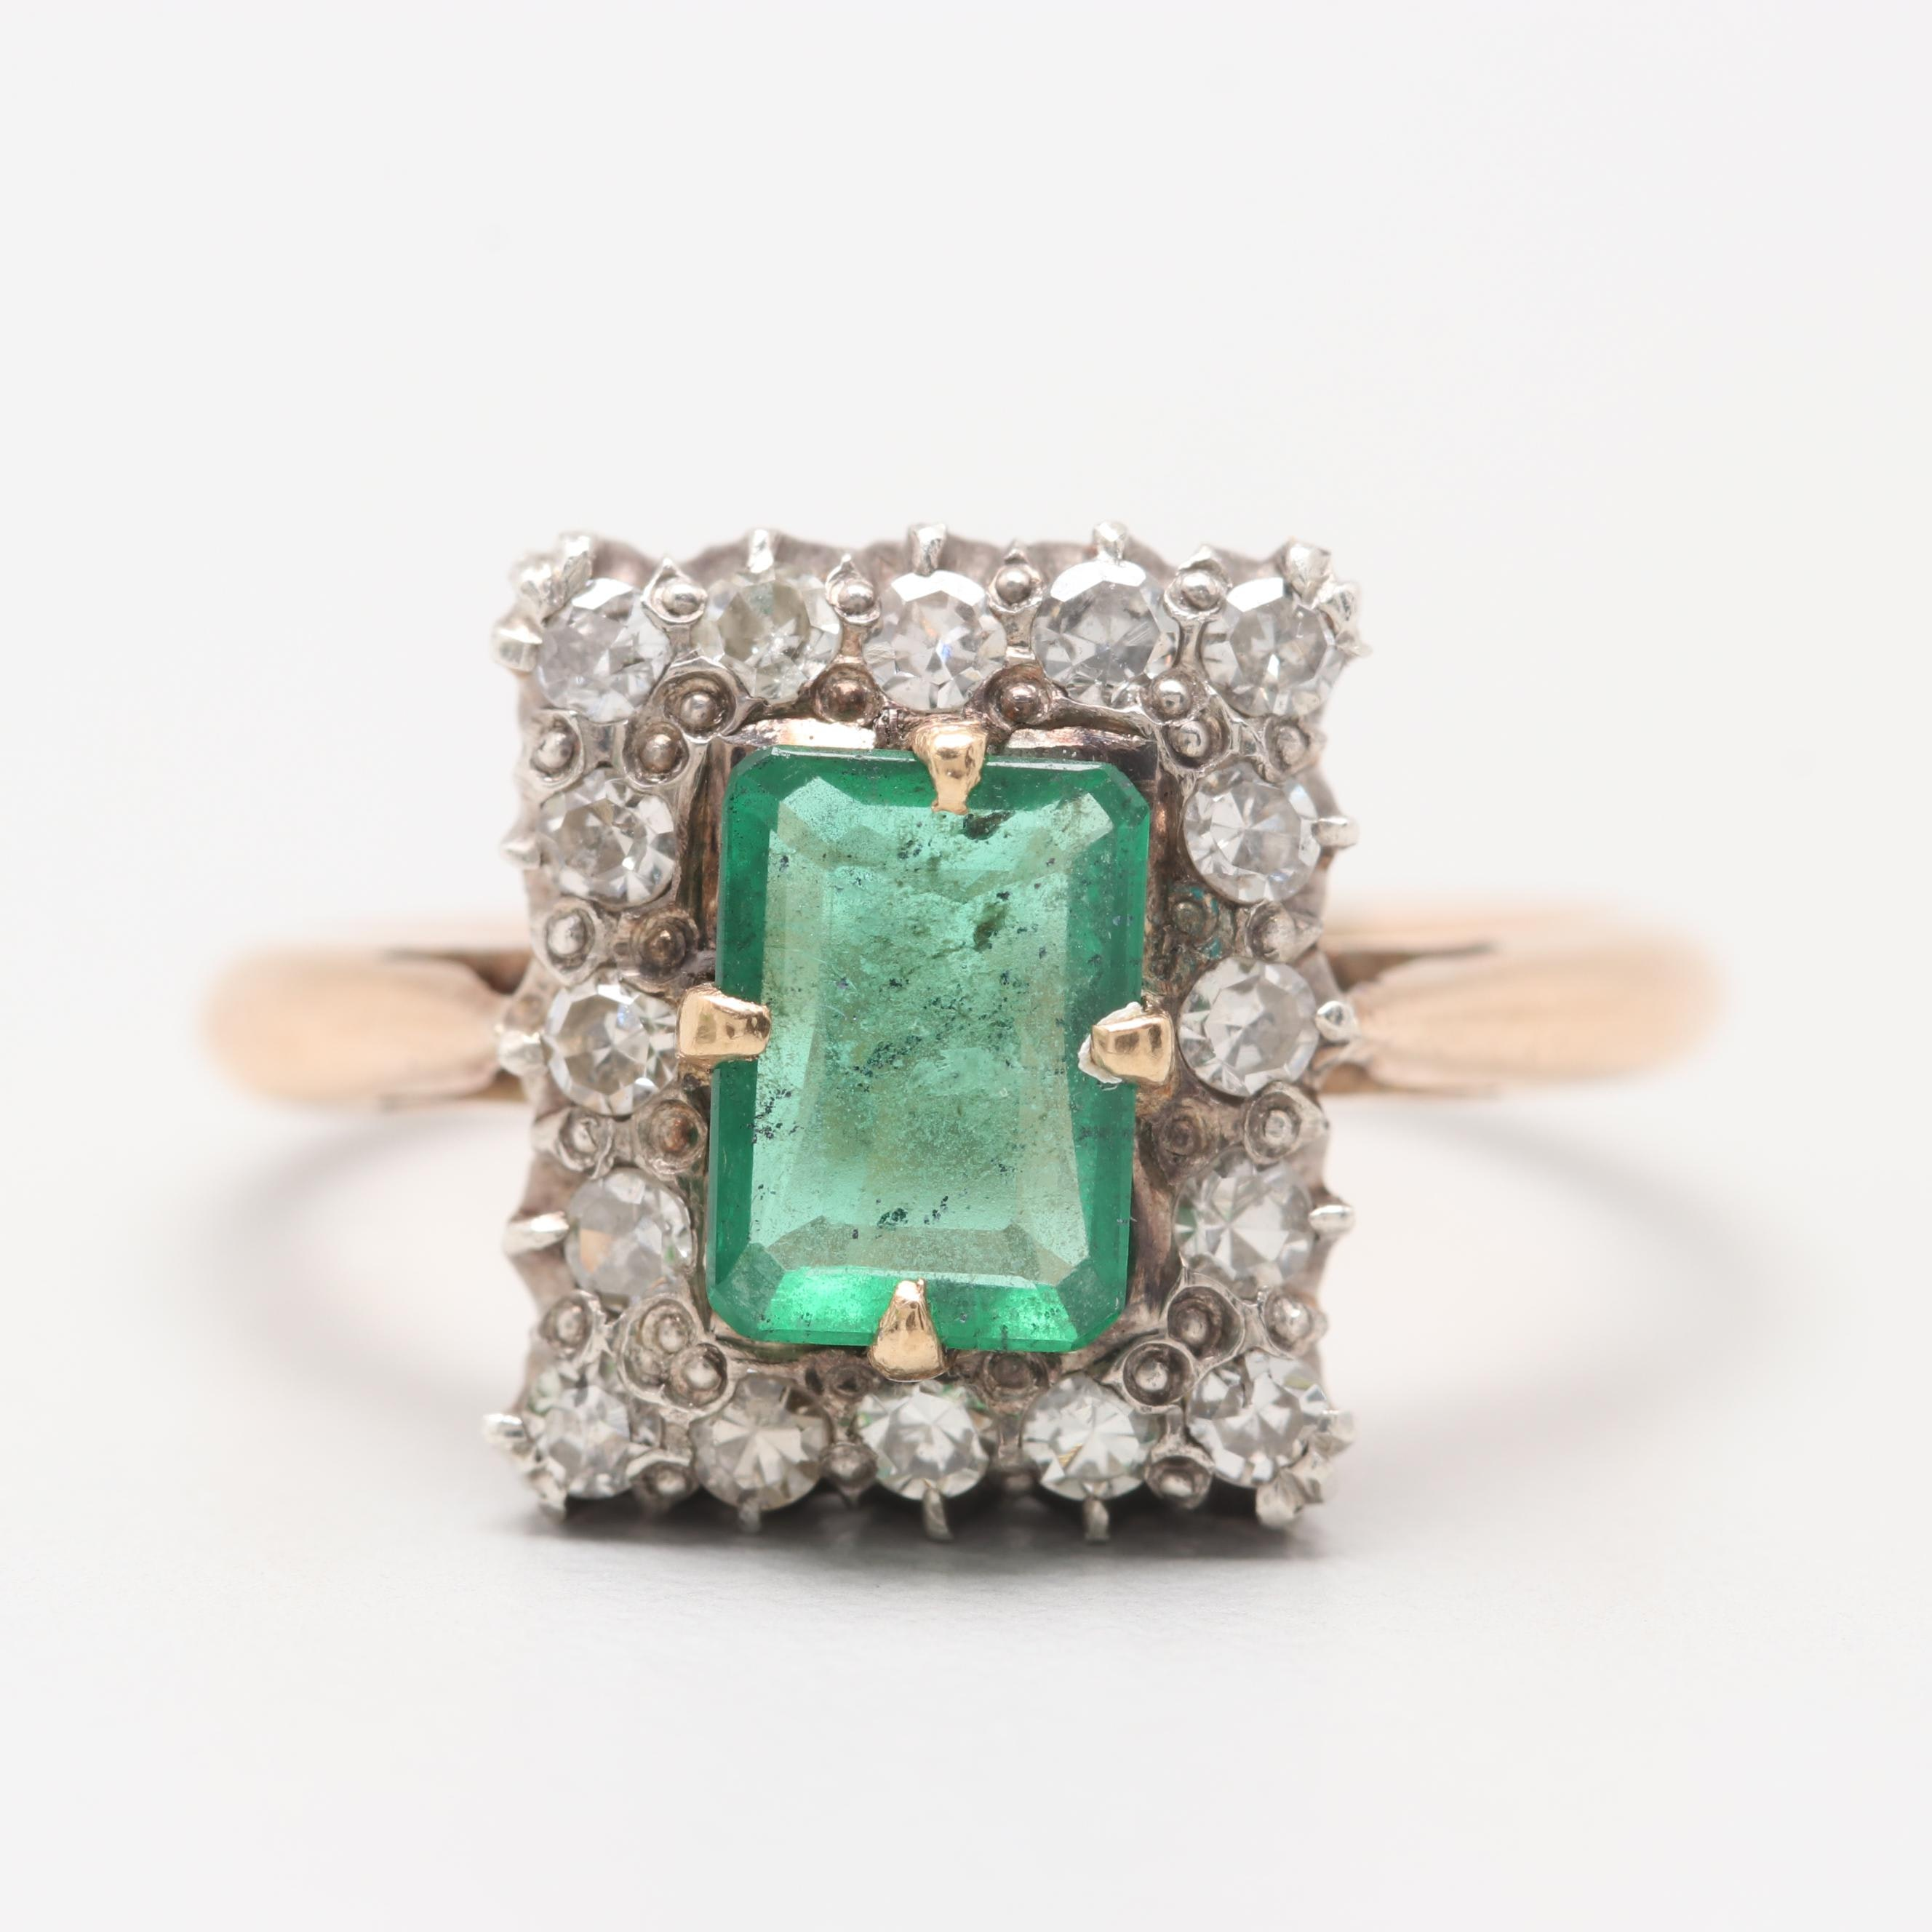 Retro Era 14K Yellow Gold Emerald and Diamond Ring with Sterling Silver Accent